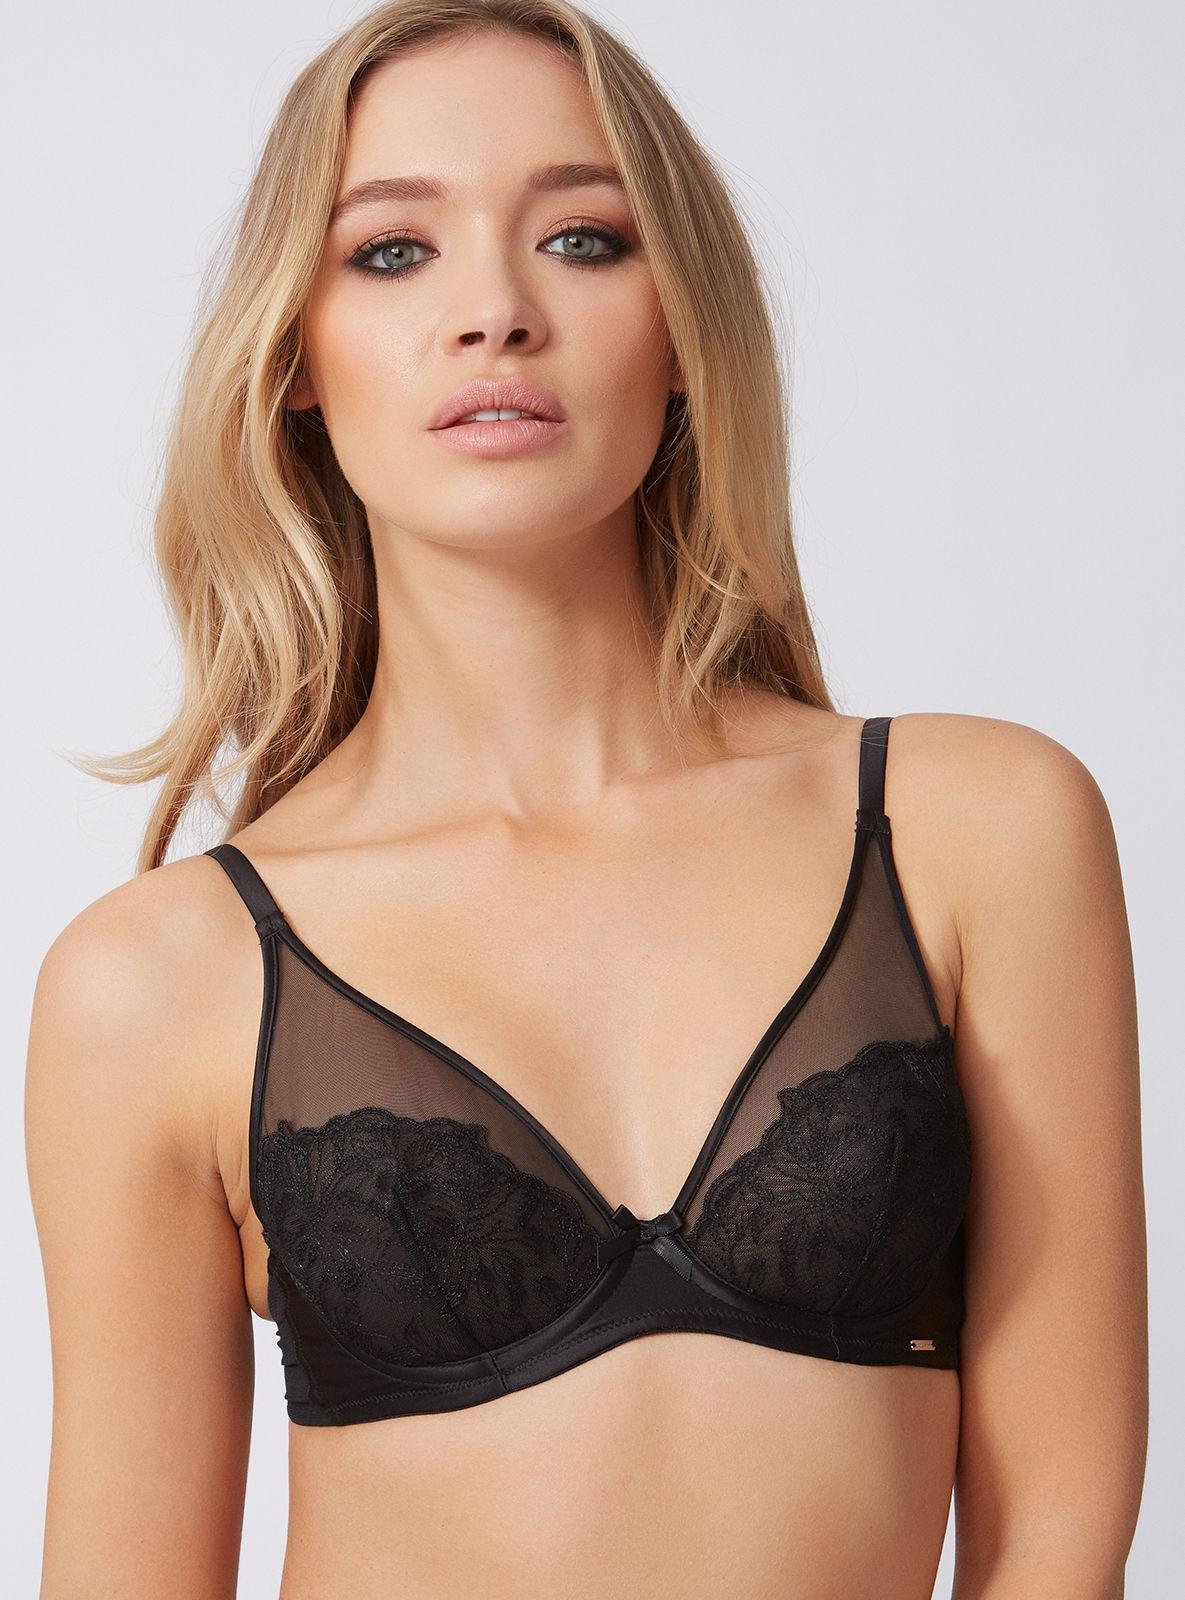 093bc81a76 Lyst - Boux Avenue Lindy Embroidered Plunge Bra in Black